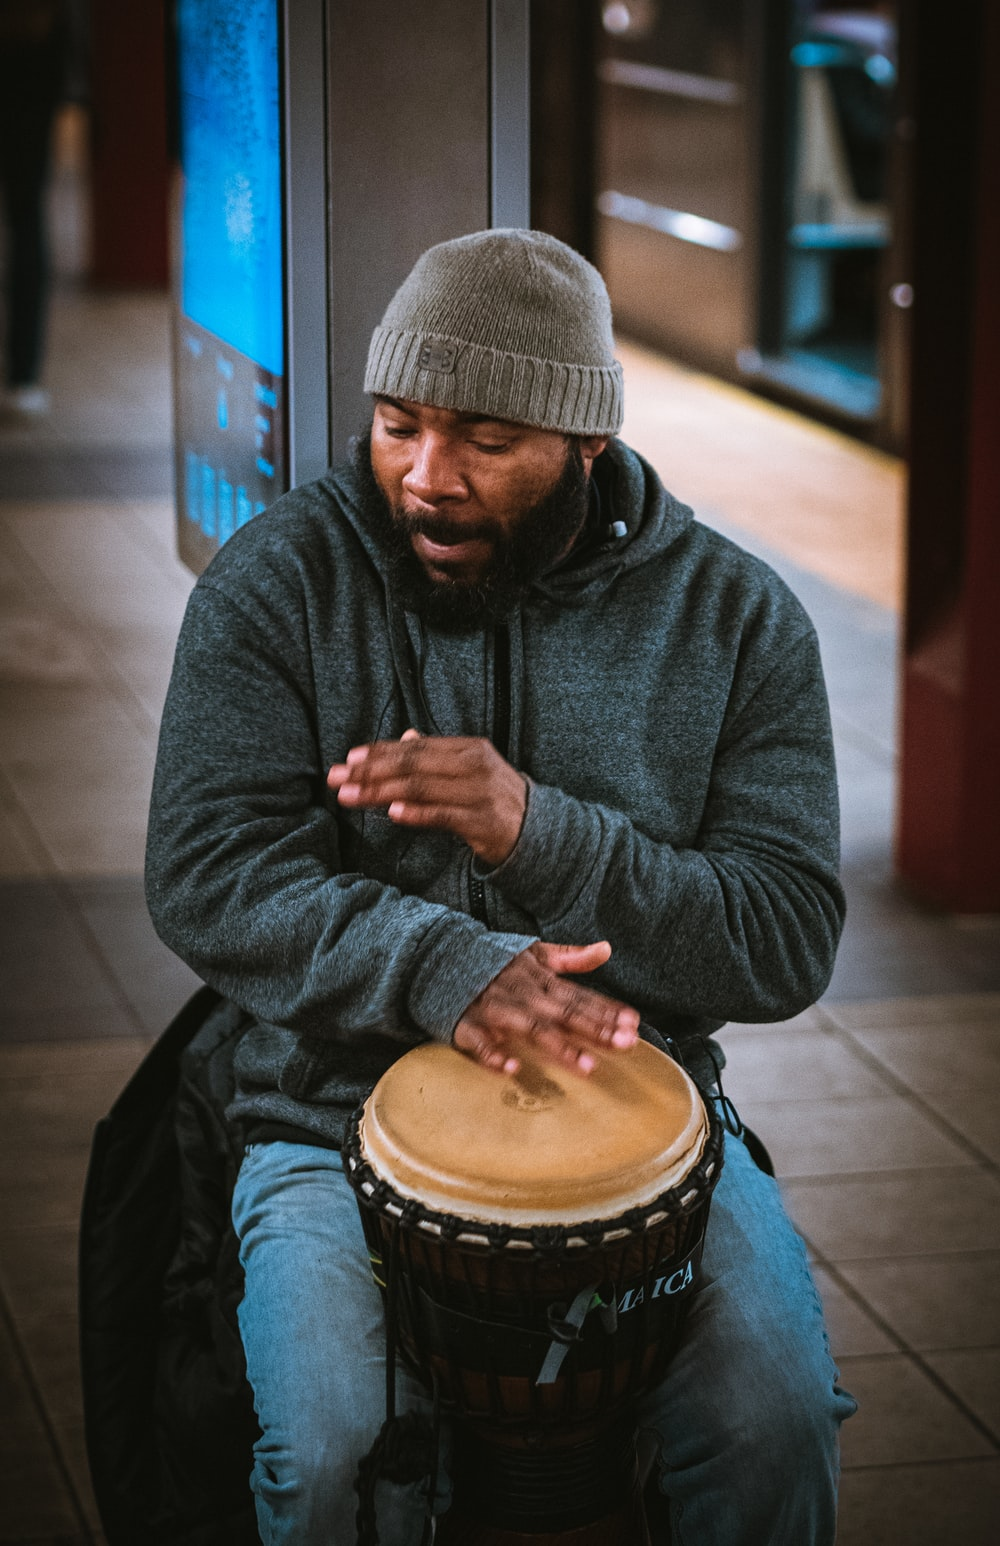 man in black knit cap and black jacket playing drum